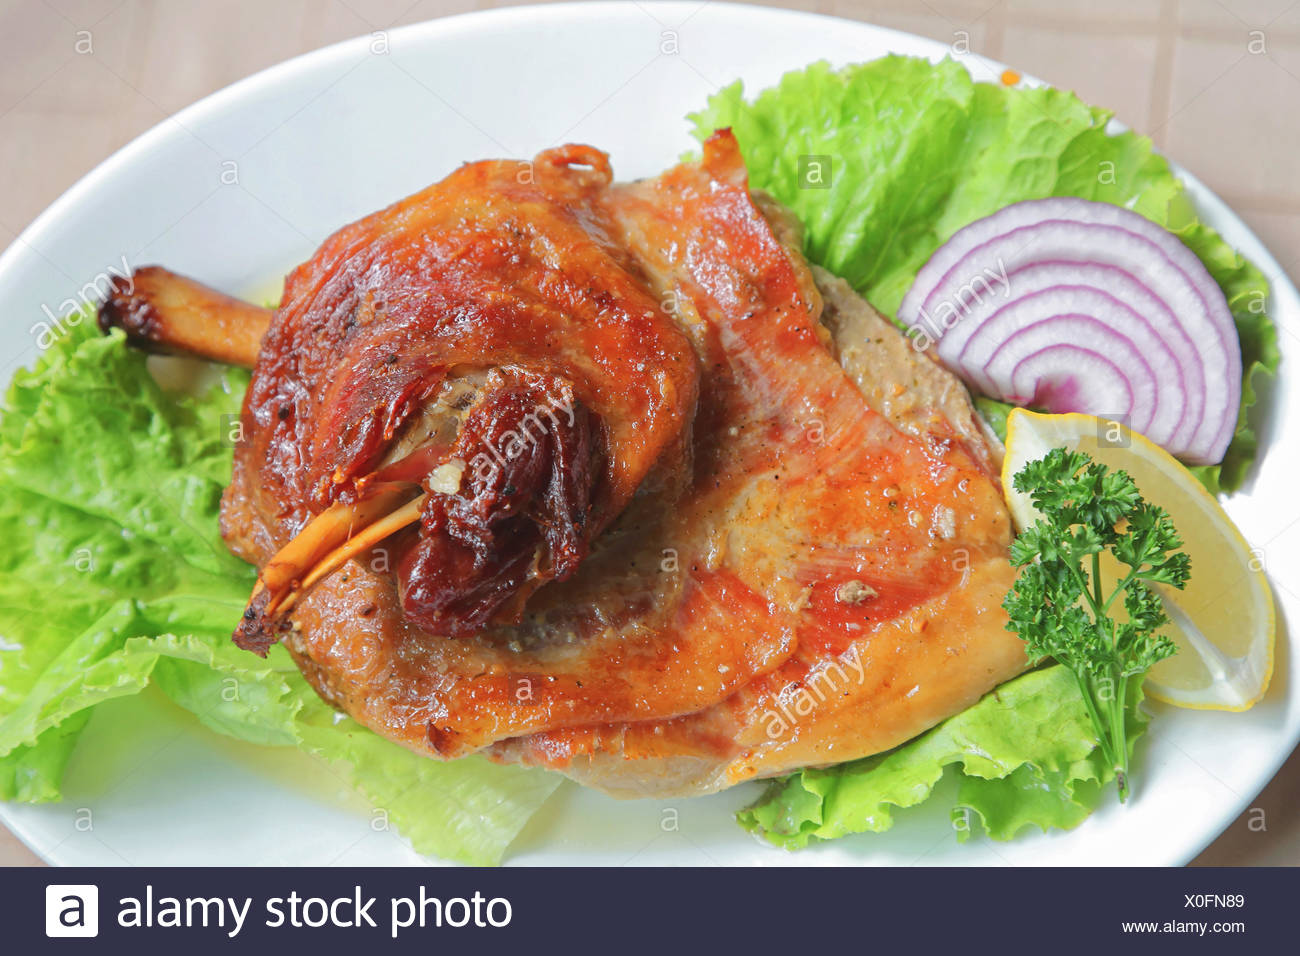 Roasted Lamb Shank - Stock Image